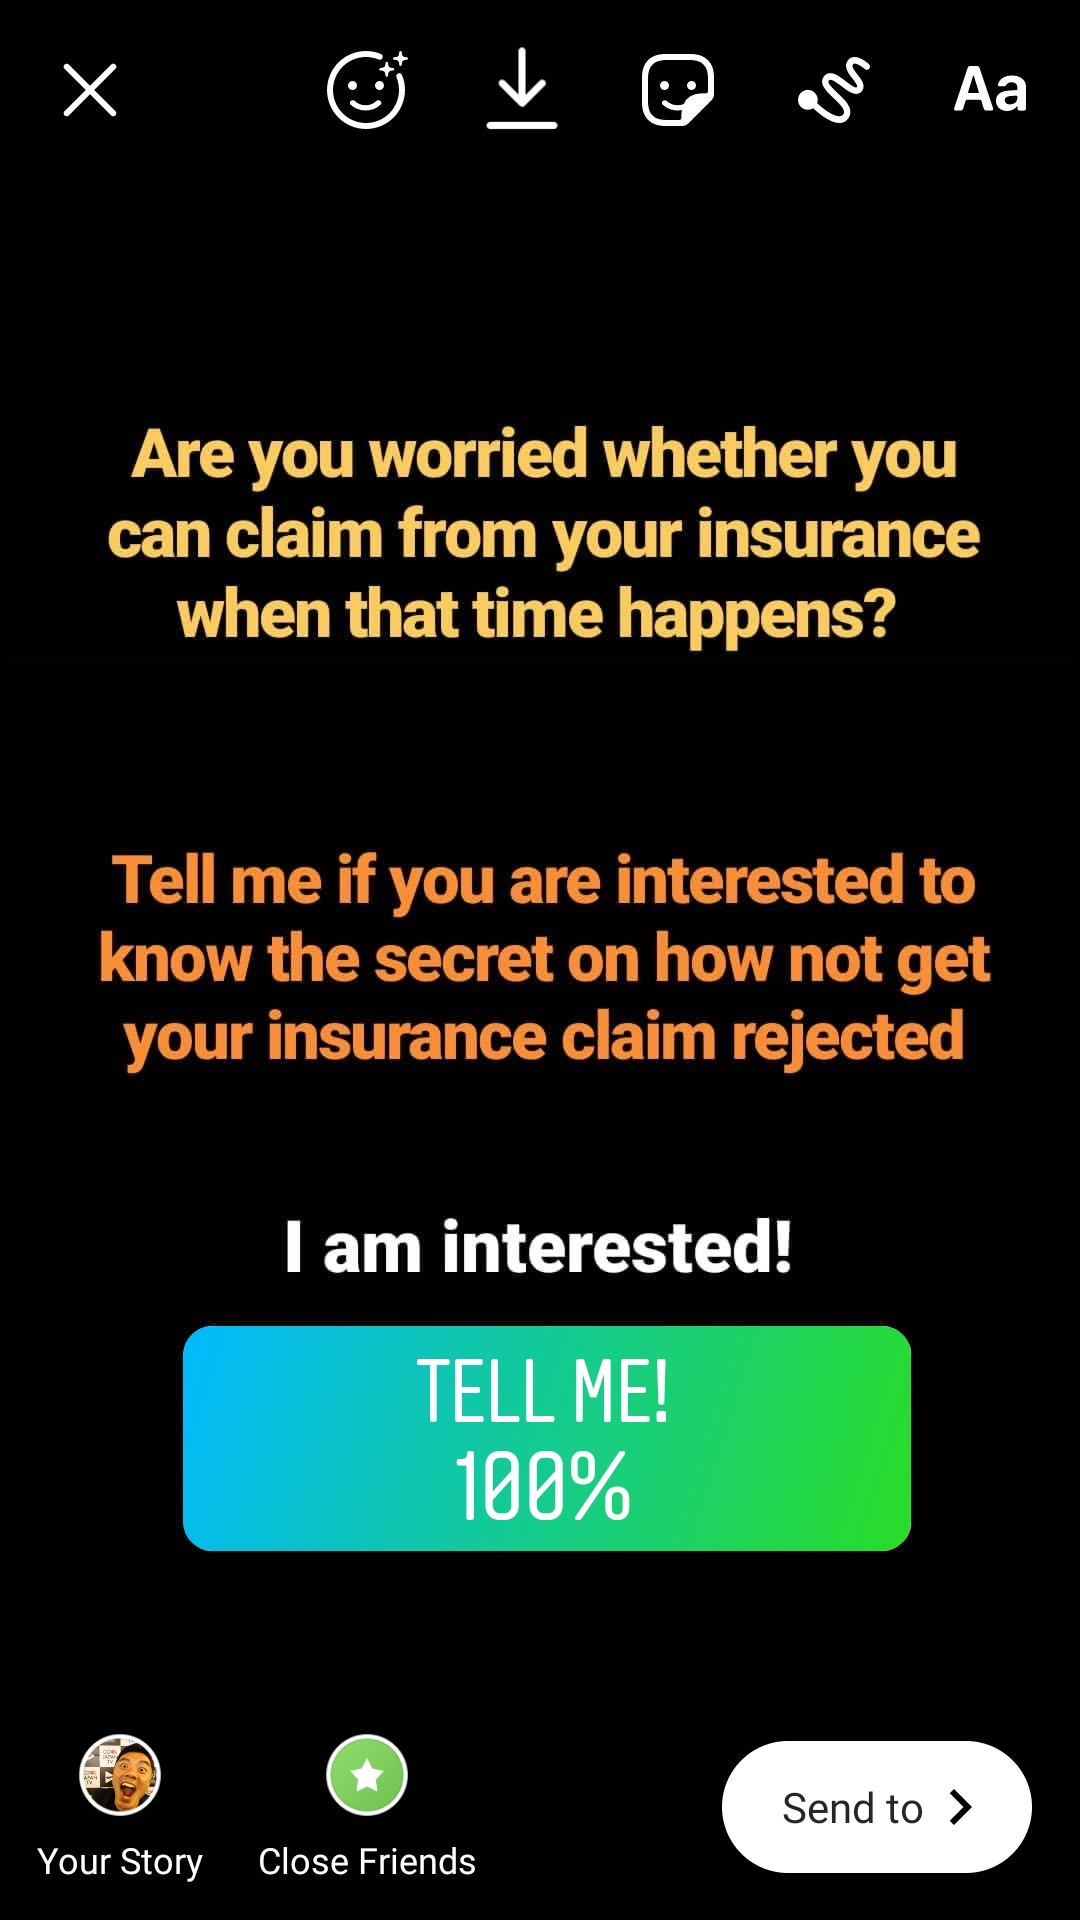 How Not to get your insurance claim rejected